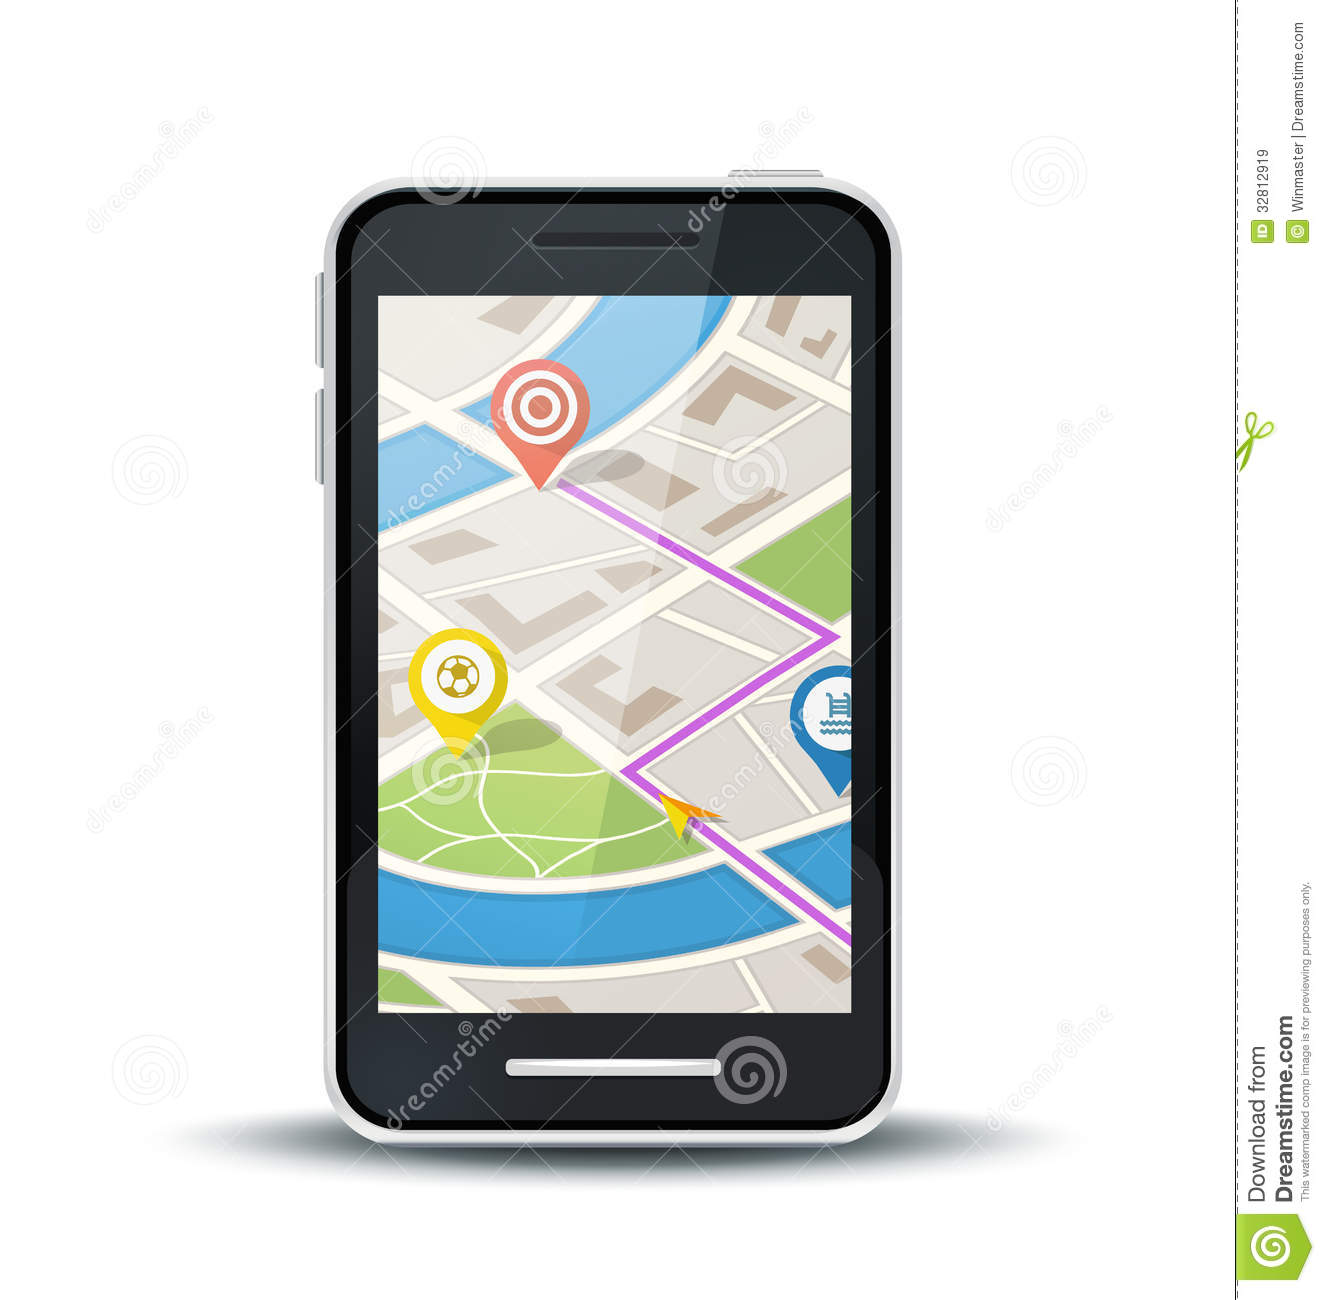 mobile phone with gps map application royalty free stock